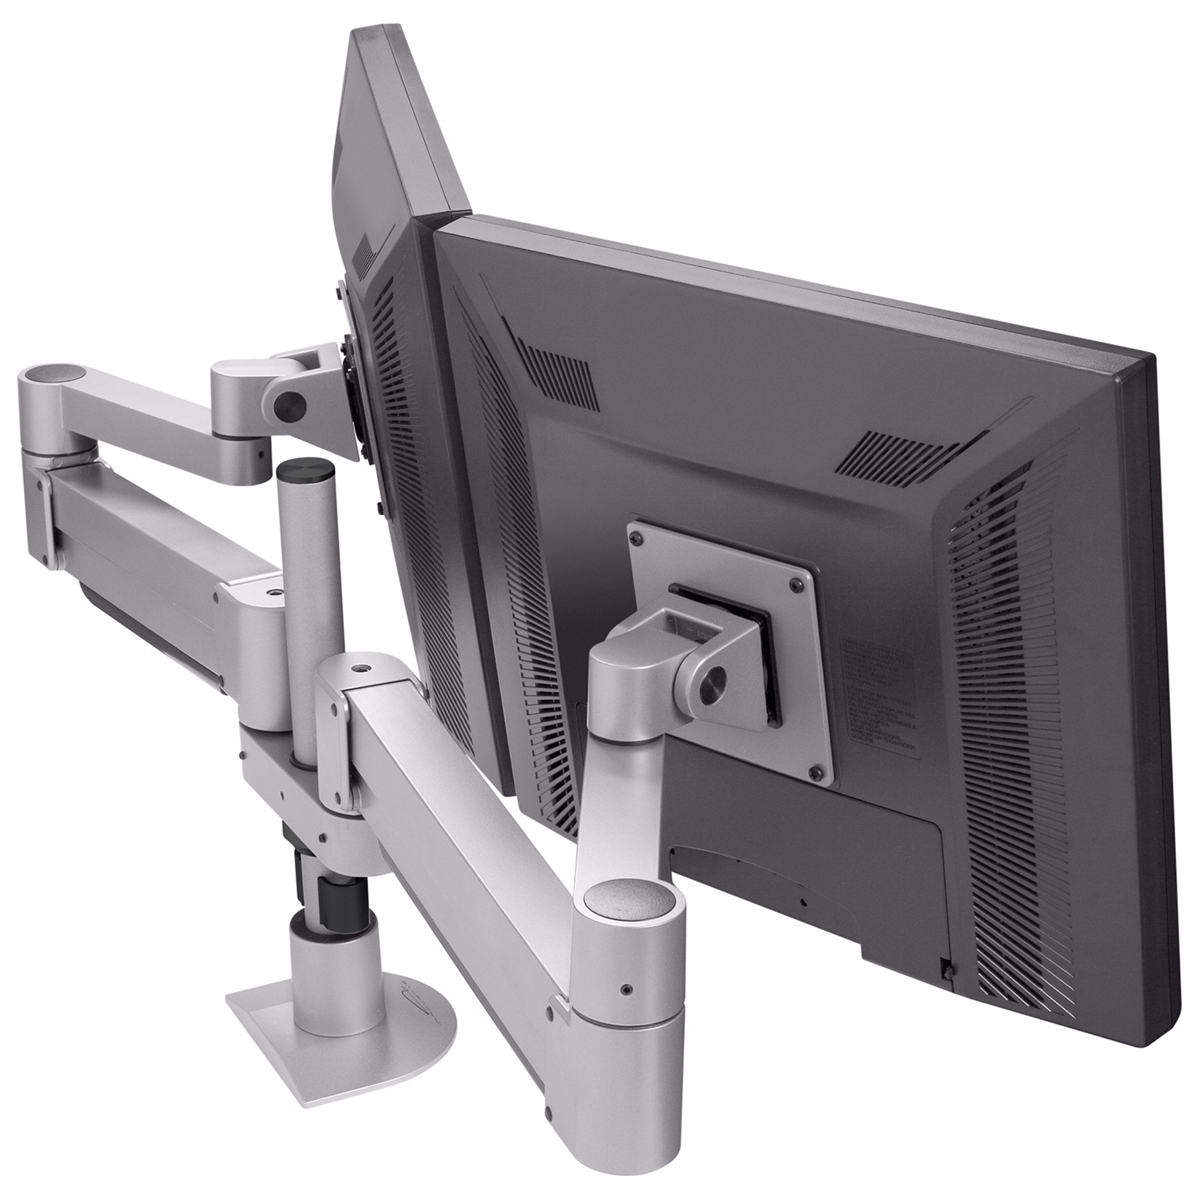 Dual Monitor Arms For Desk